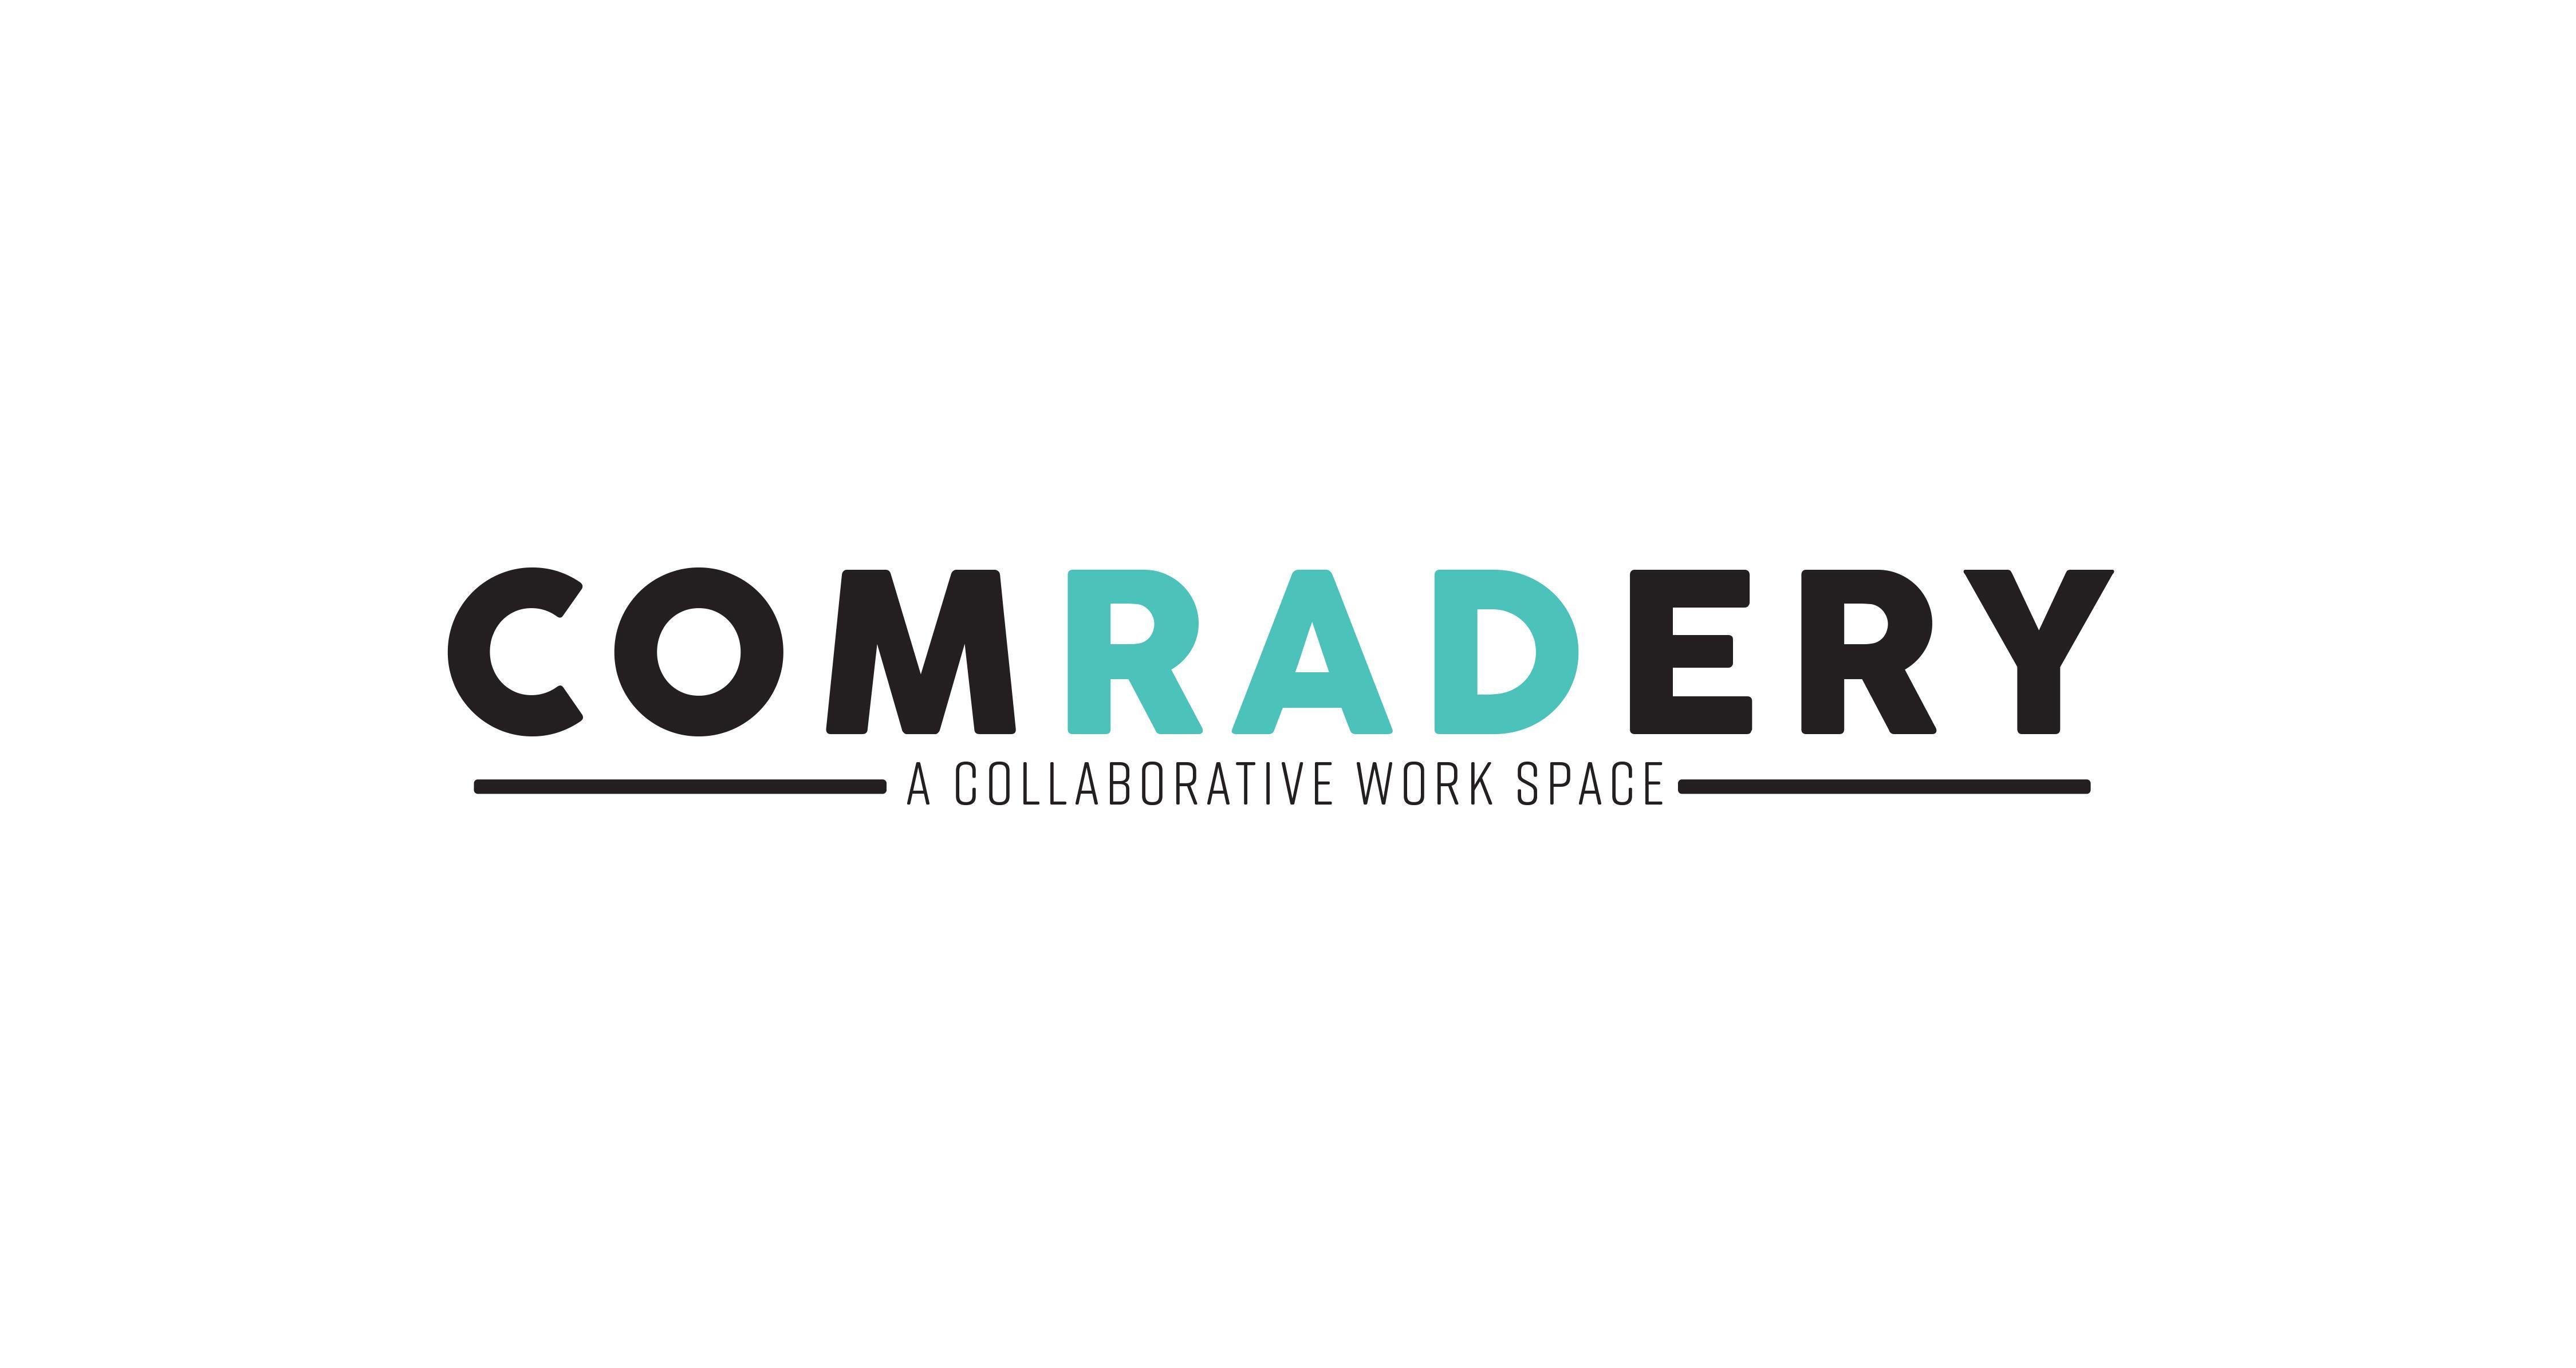 Logo of Comradery Co-work